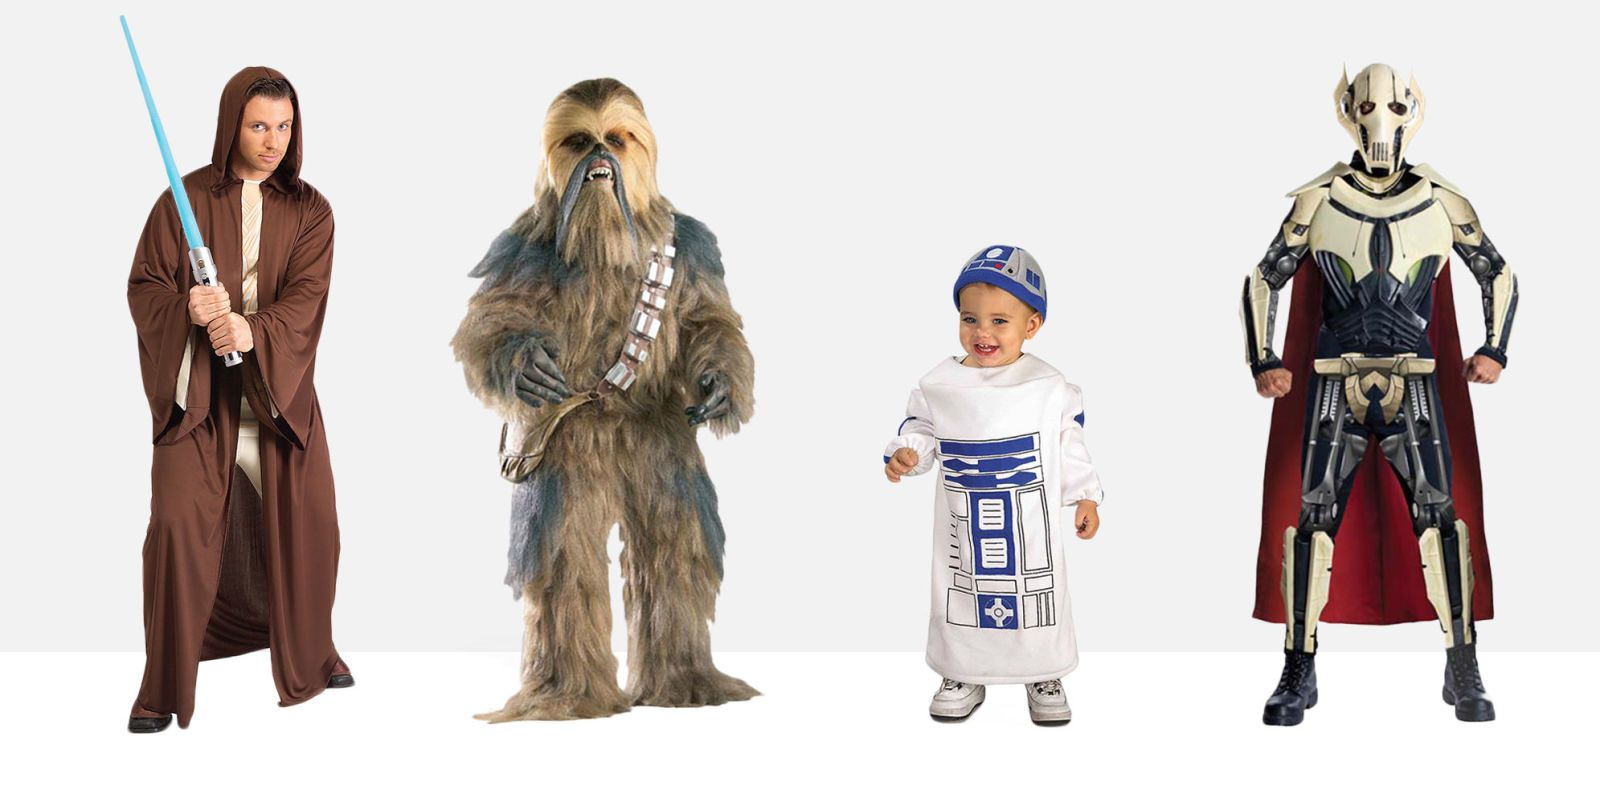 star wars group costume  sc 1 st  BestProducts.com & 30 Best Group Halloween Costumes for 2018 - Fun Group Costume Ideas ...